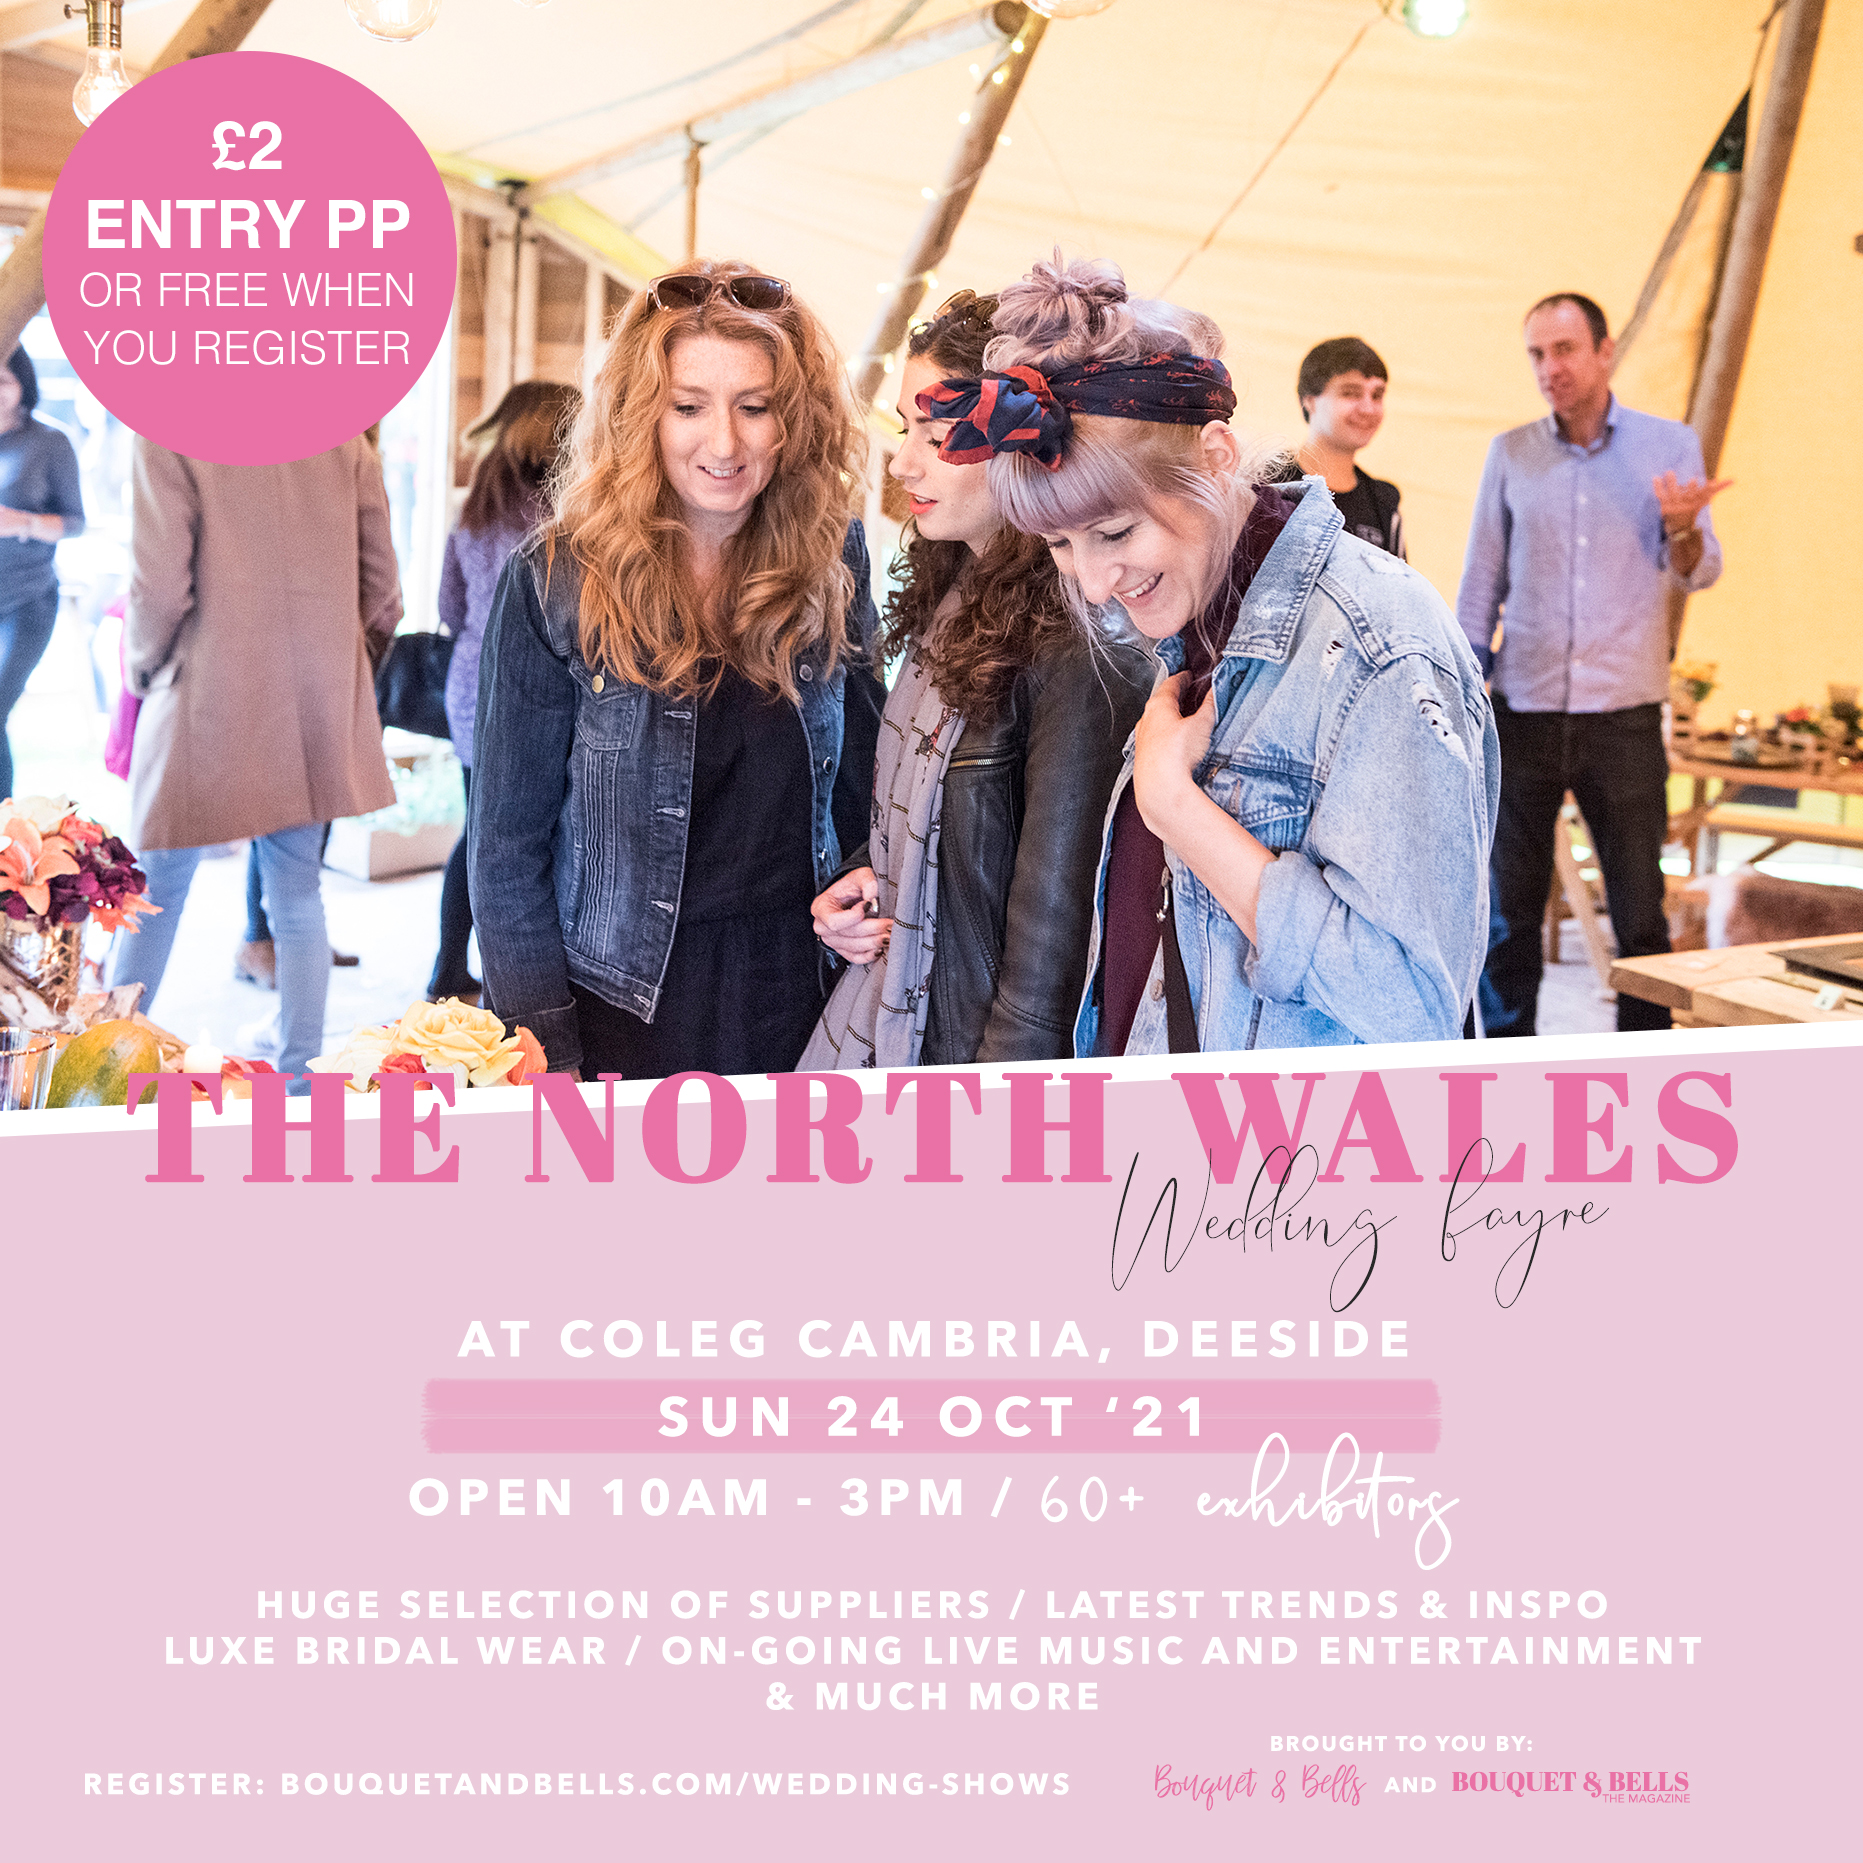 the-north-wales-wedding-fayre-coleg-cambria-bouquet-and-bells